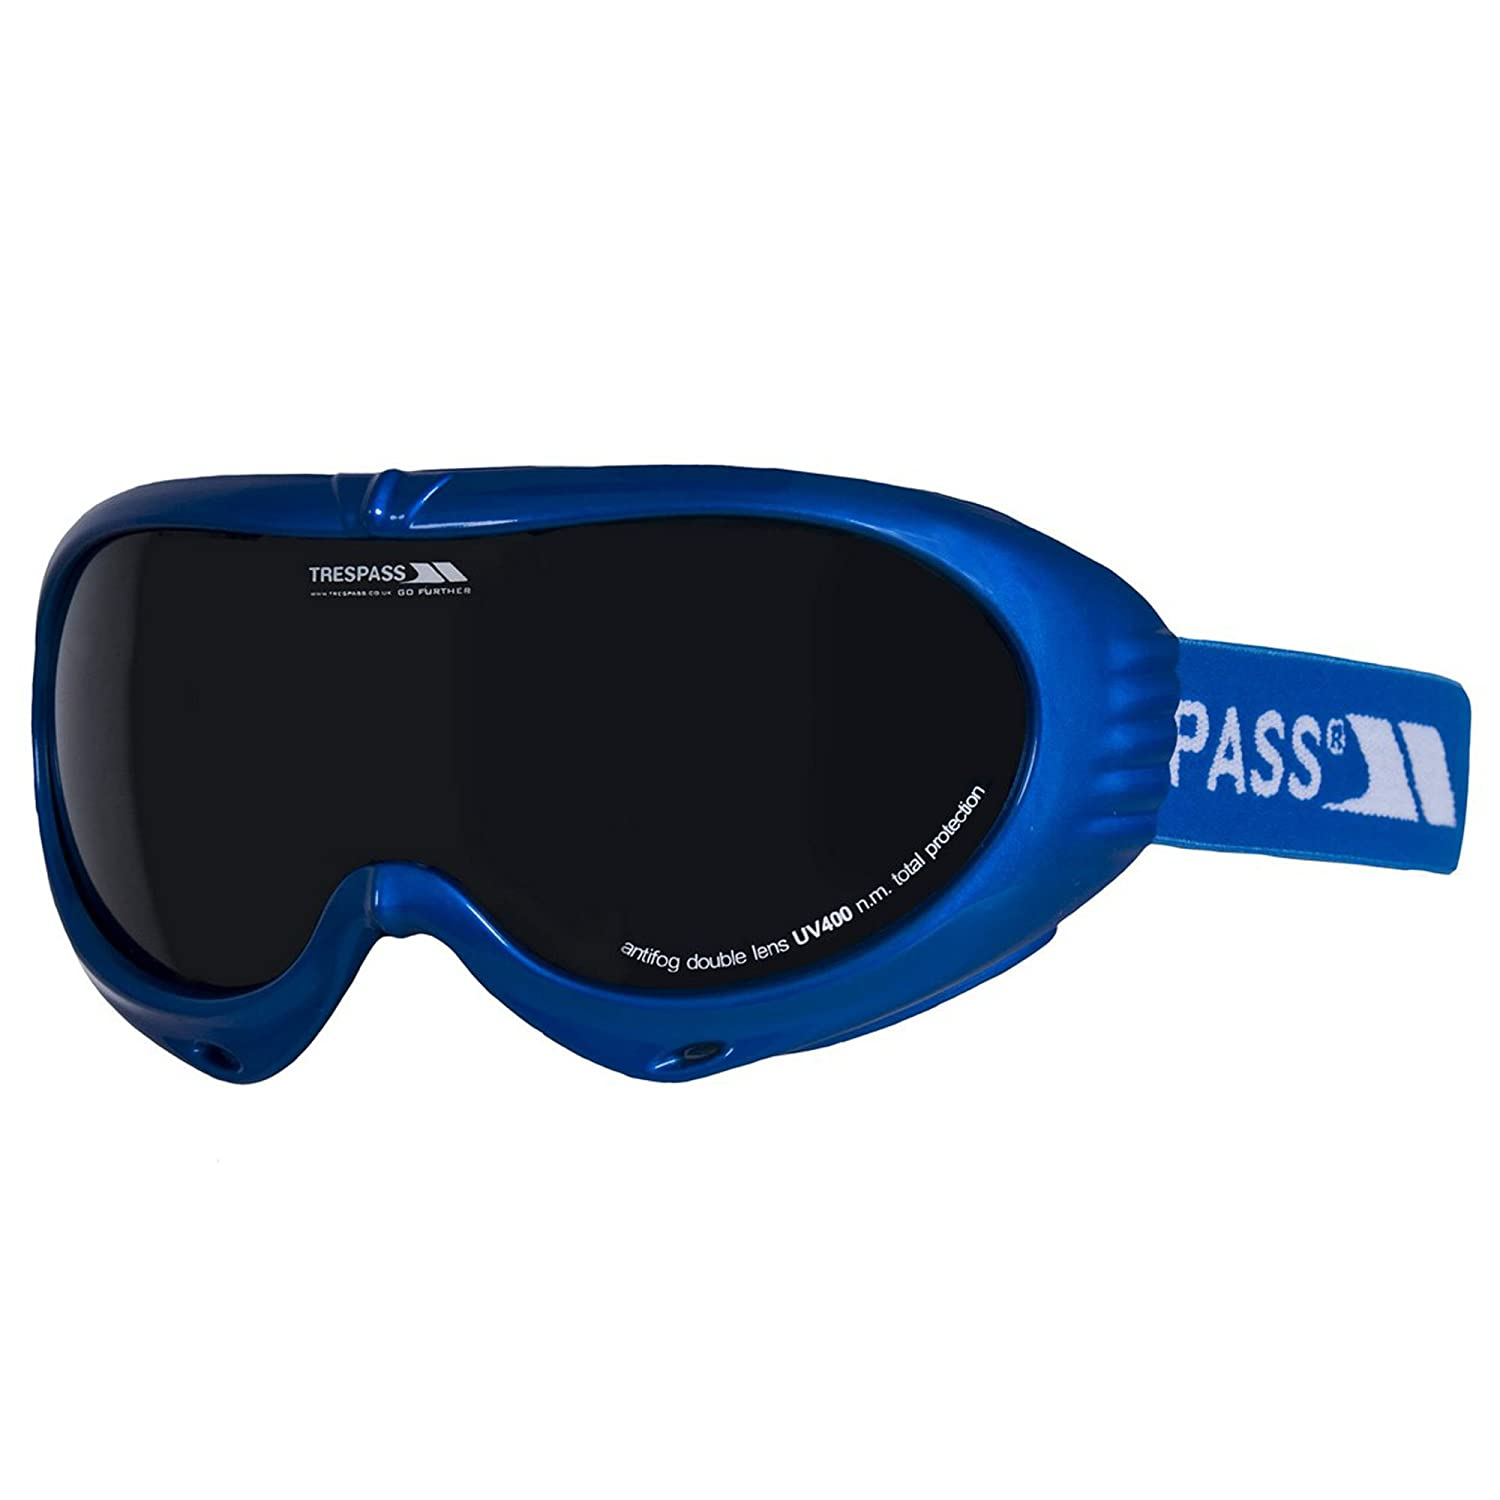 Trespass Jotun Youth Doppelglas Skibrille